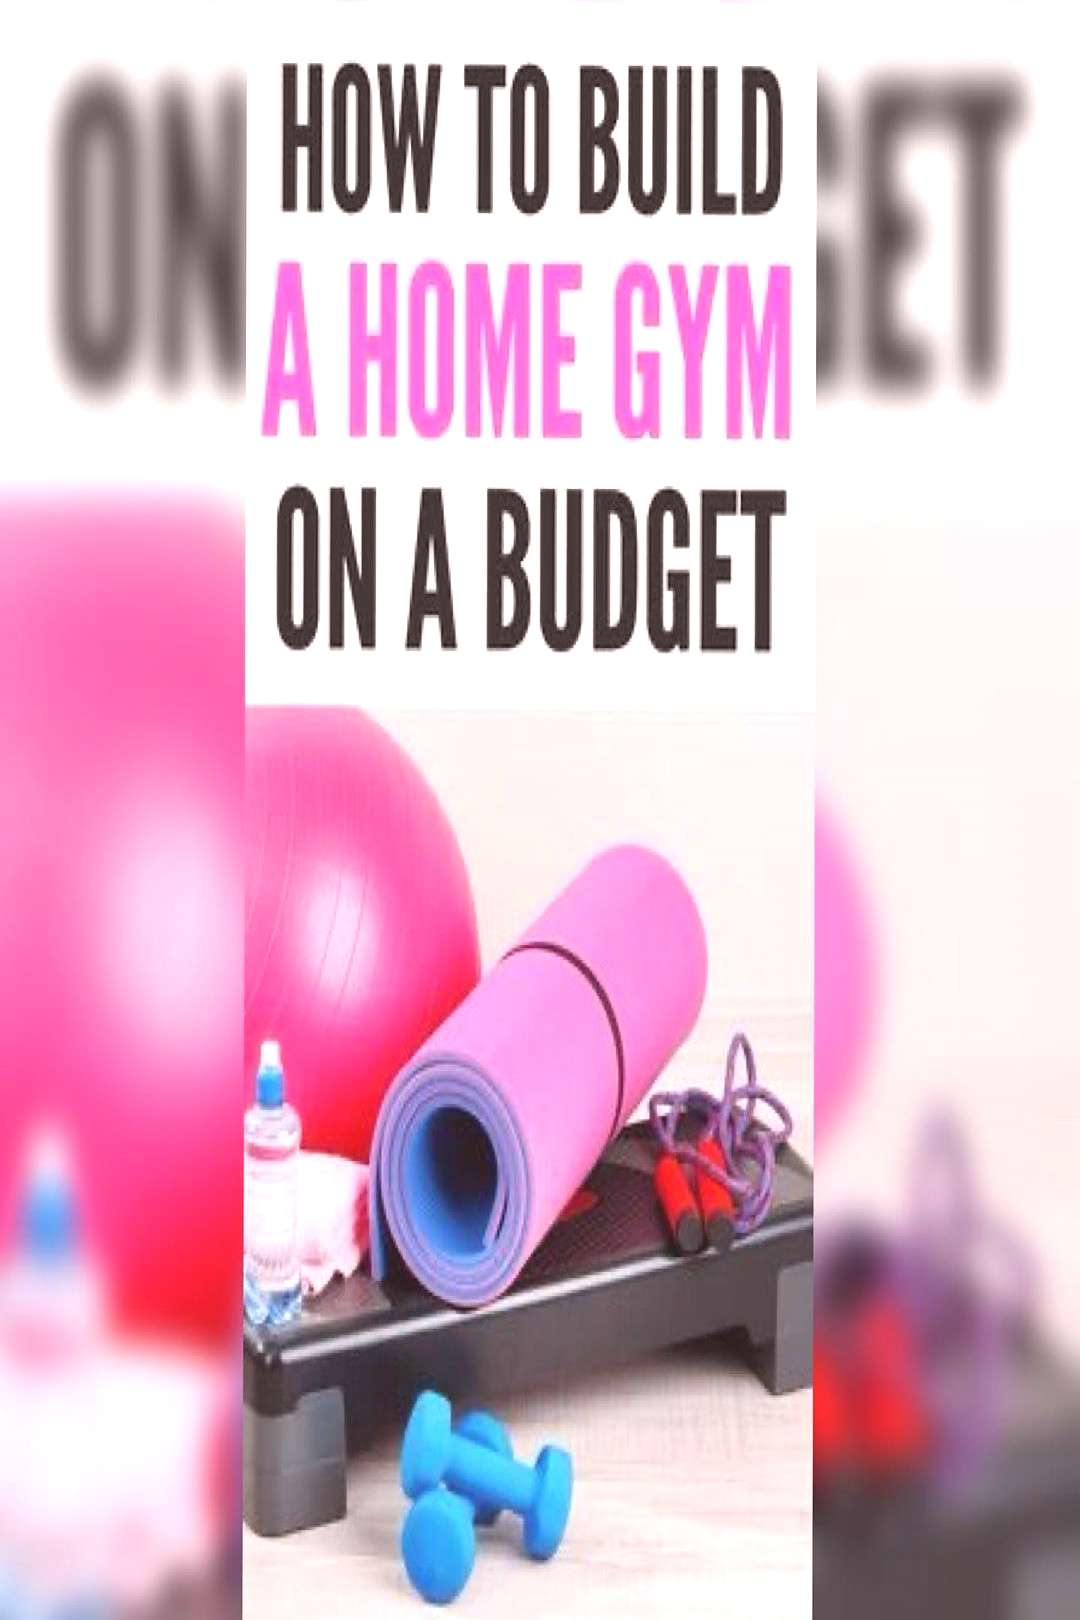 deb fitness on June 02 2020 text that says HOW TO BUILD A HOME GY